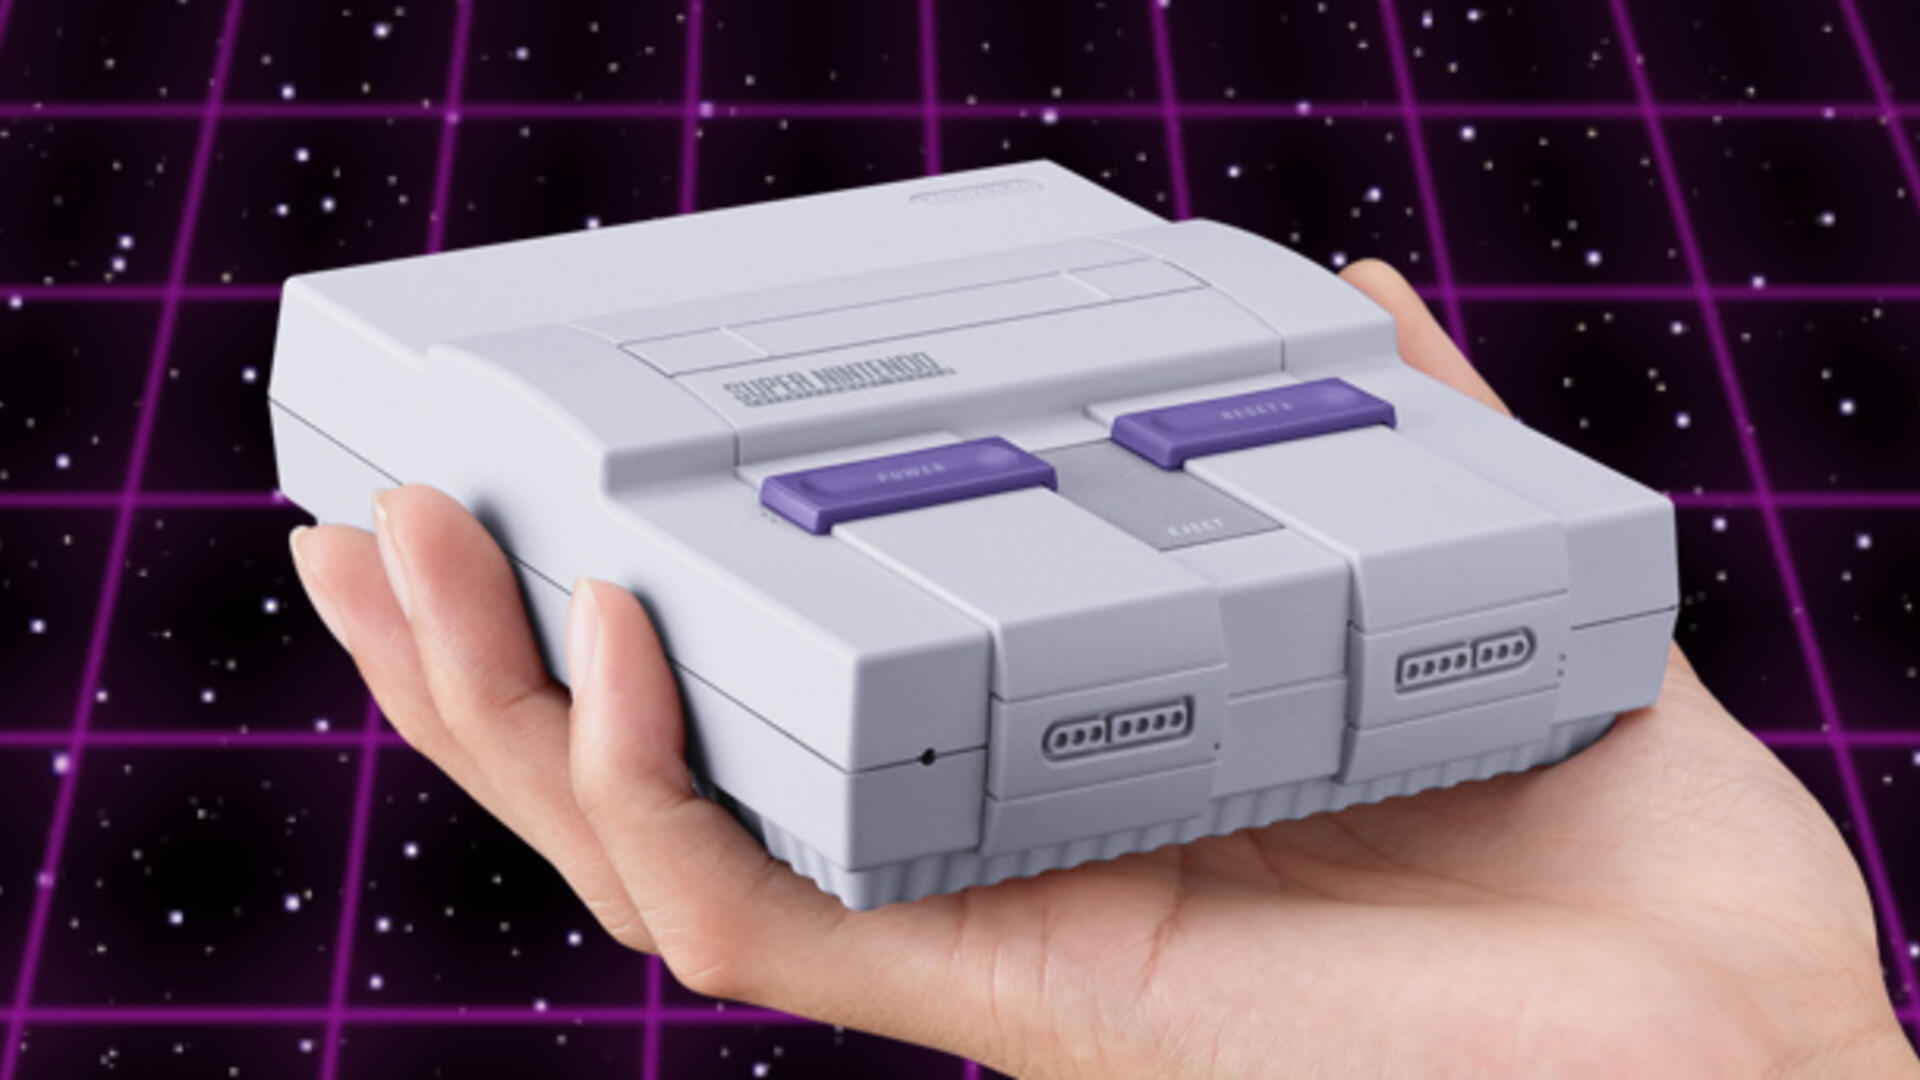 More SNES Classic Units Will be Available at GameStop and ThinkGeek Starting Today